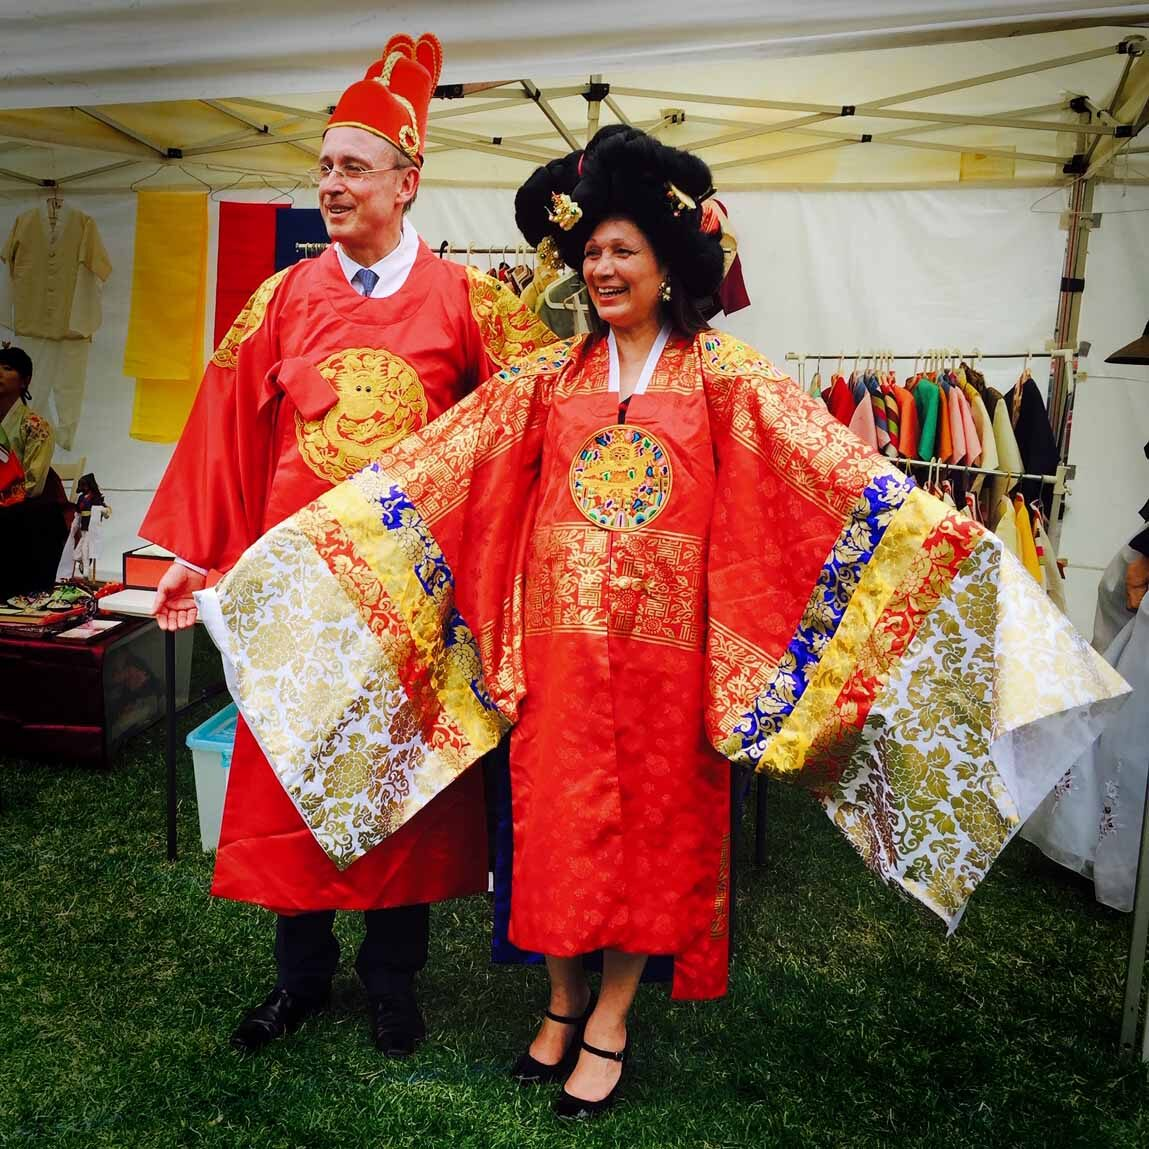 Lord Mayor Martin Haese Lady Mayoress Genevieve Theseira-Haese Korean Festival City of Adelaide